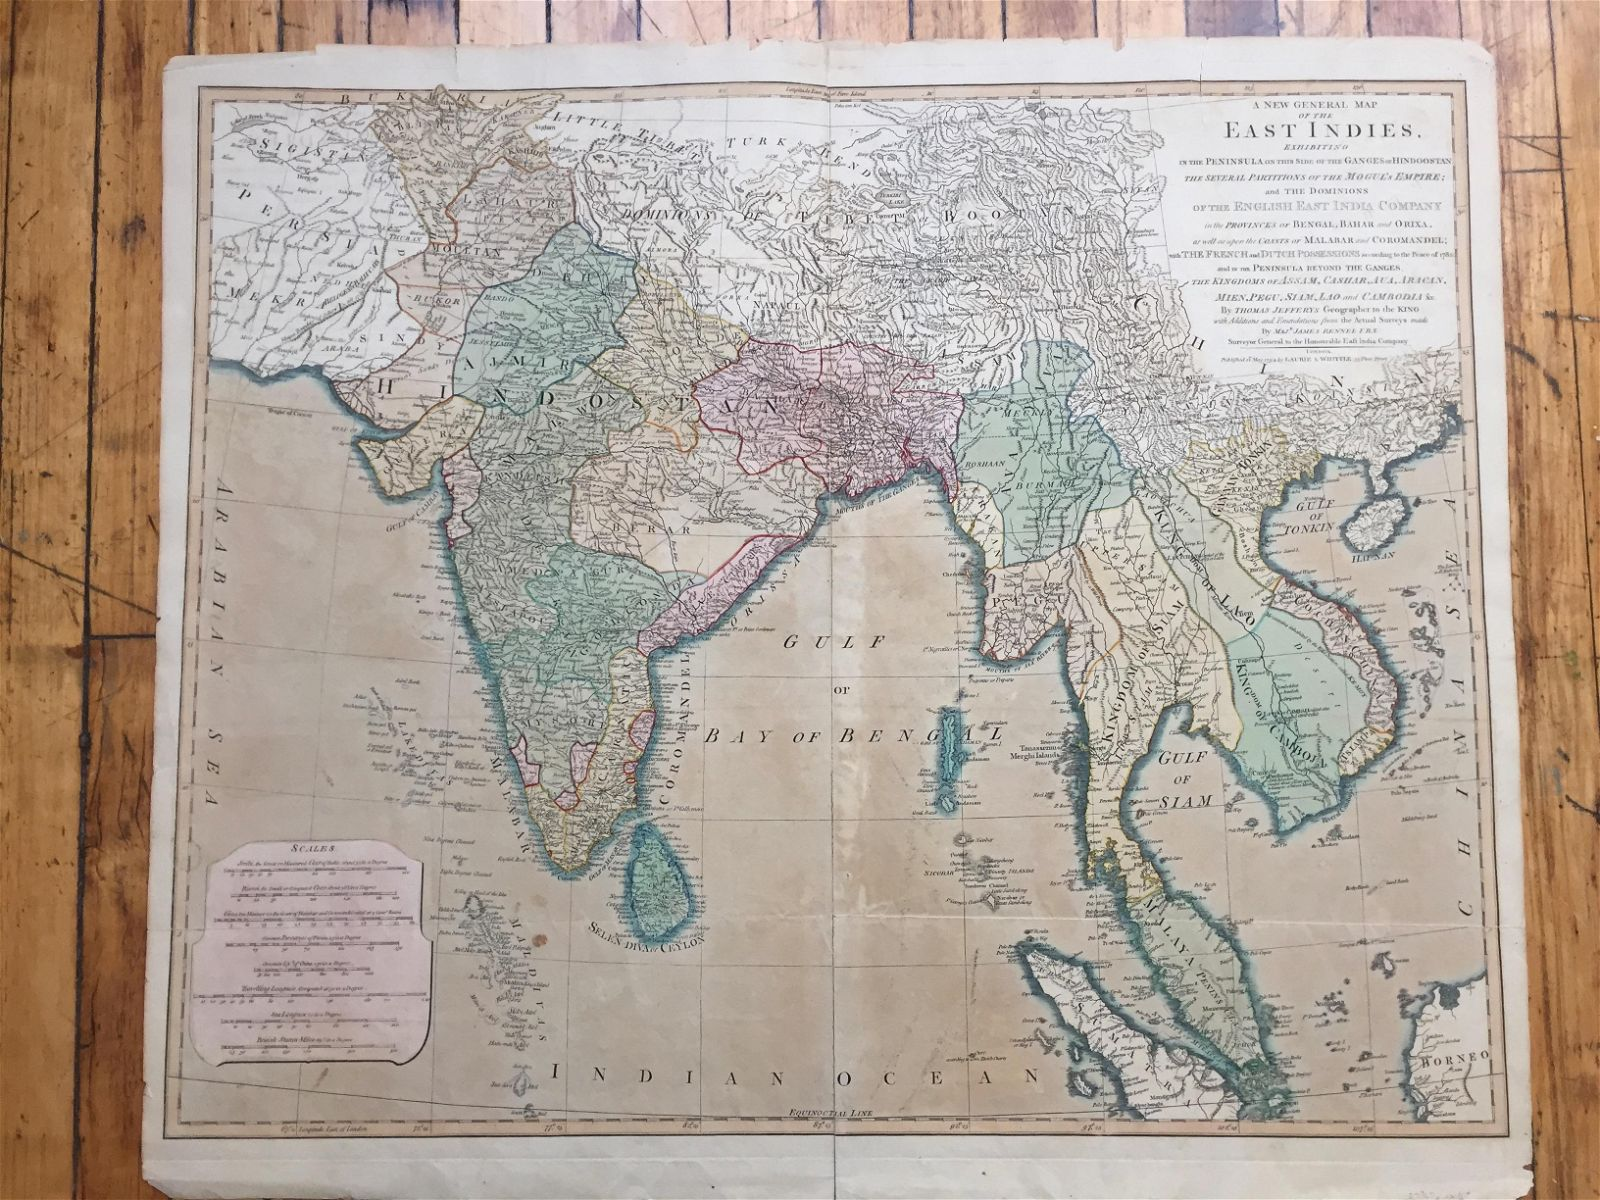 A New General Map of the East Indies.